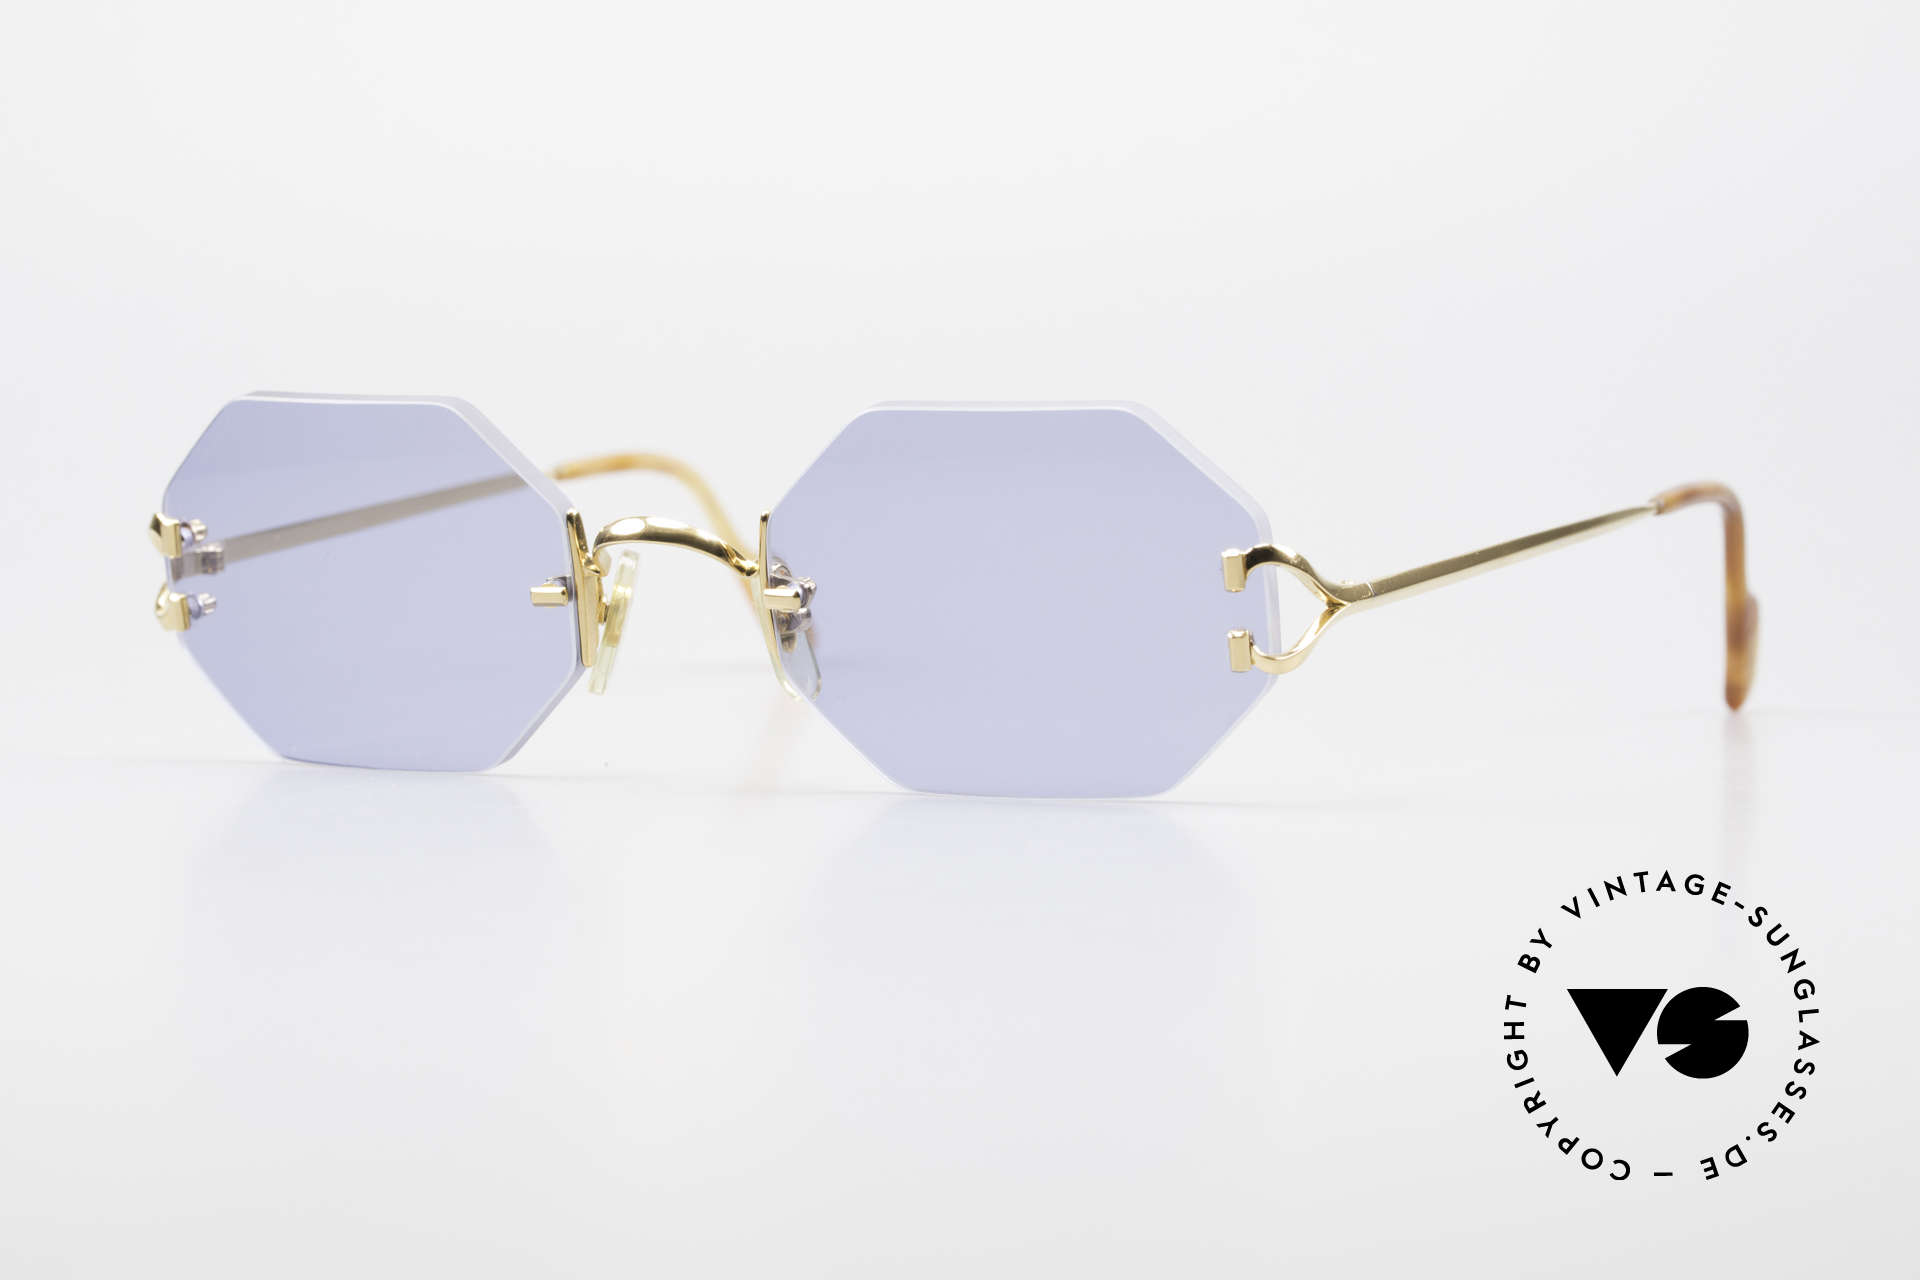 Cartier Rimless Octag Octag Shades One of a Kind, octagonal rimless CARTIER luxury shades from '97, Made for Men and Women